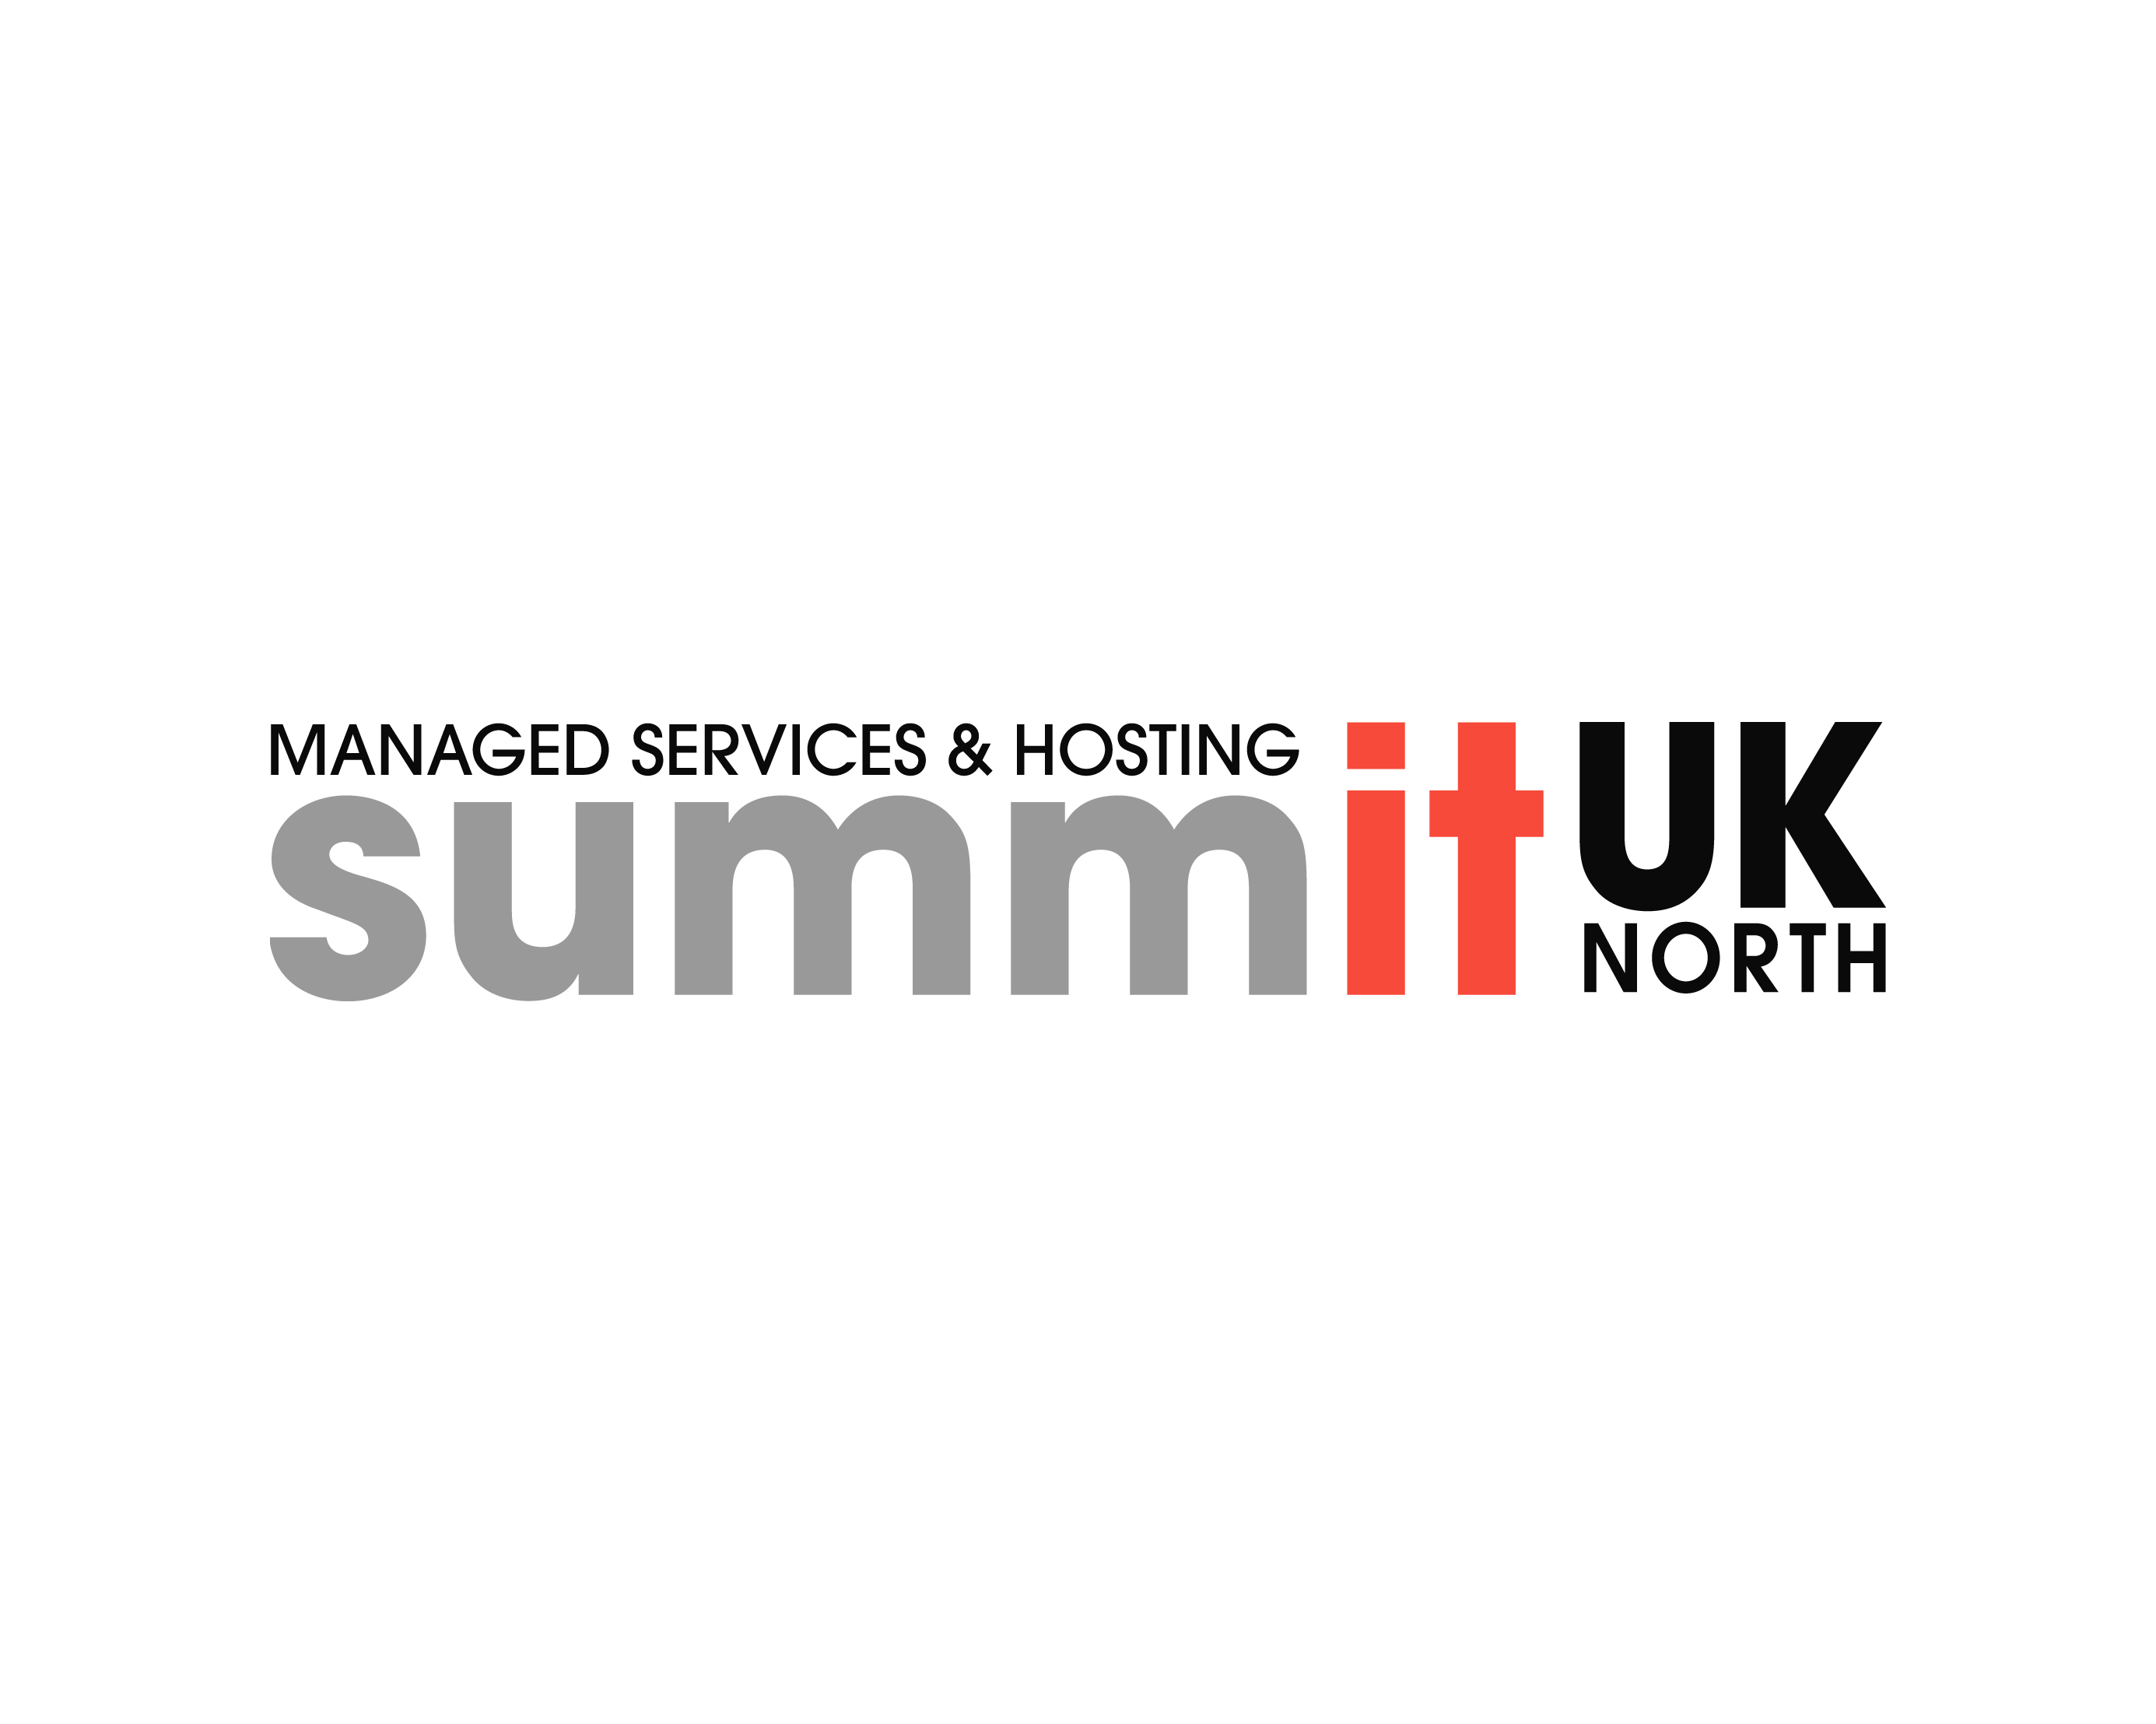 MSH Summit UK North